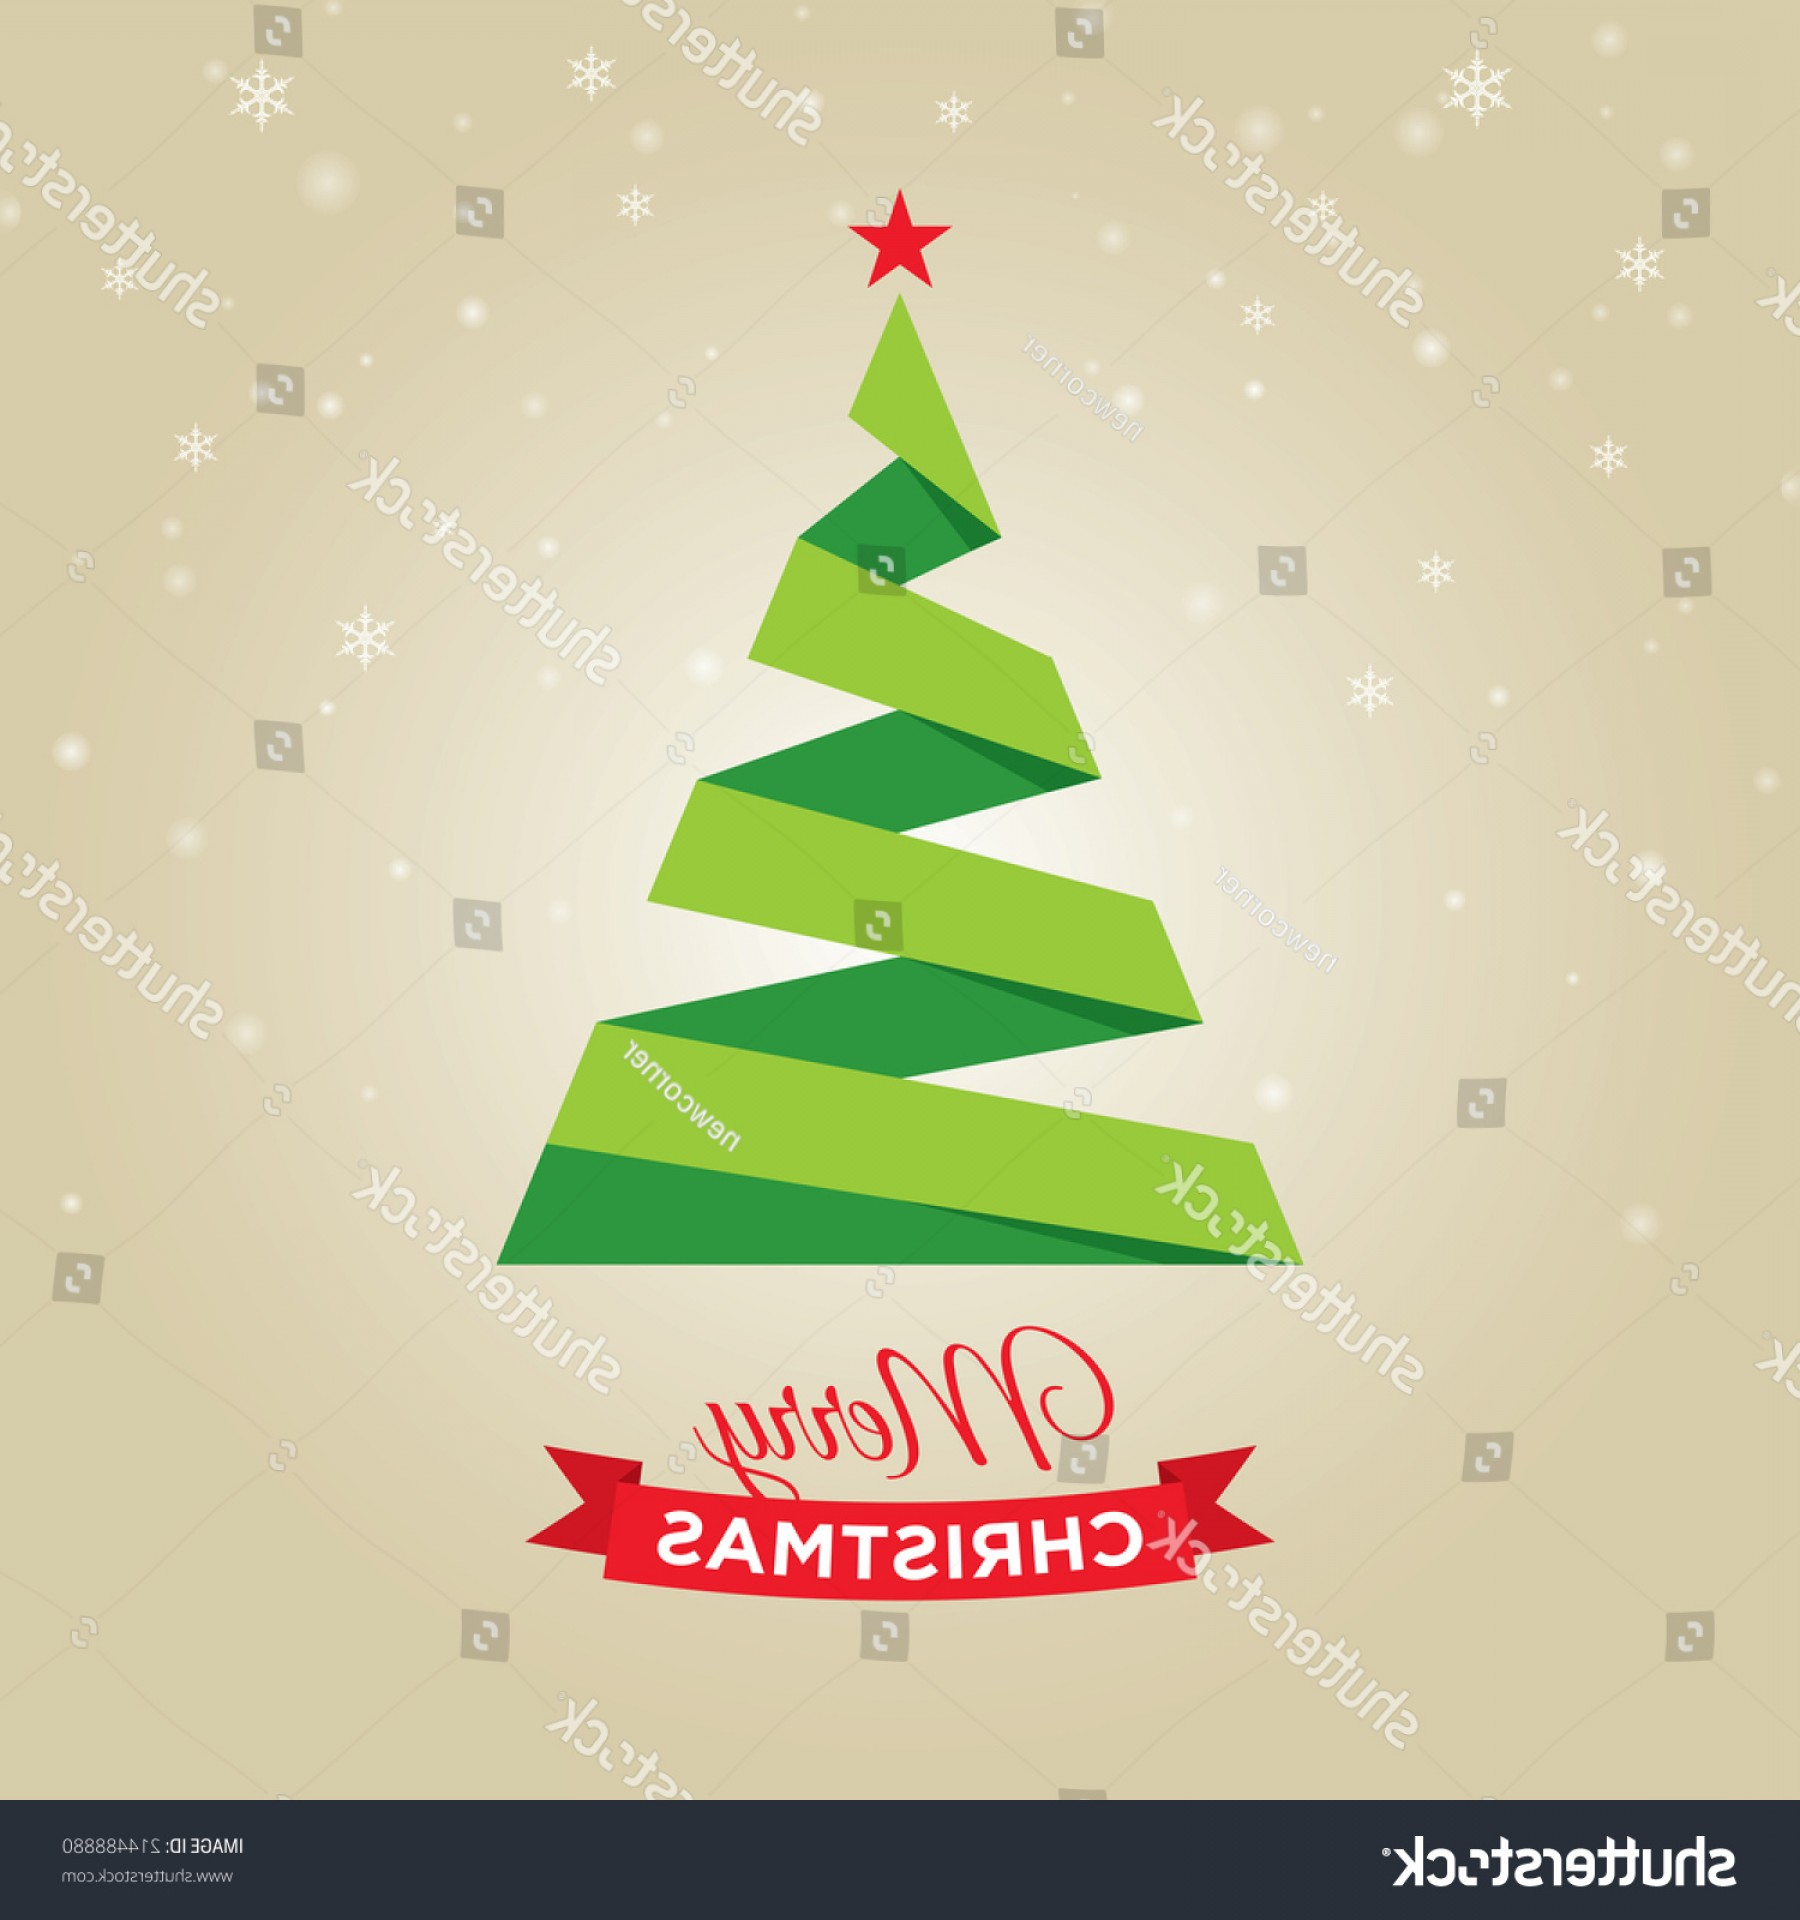 Less Christmas Tree Abstract Vector Background: Merry Christmas Card Graphic Tree Gold